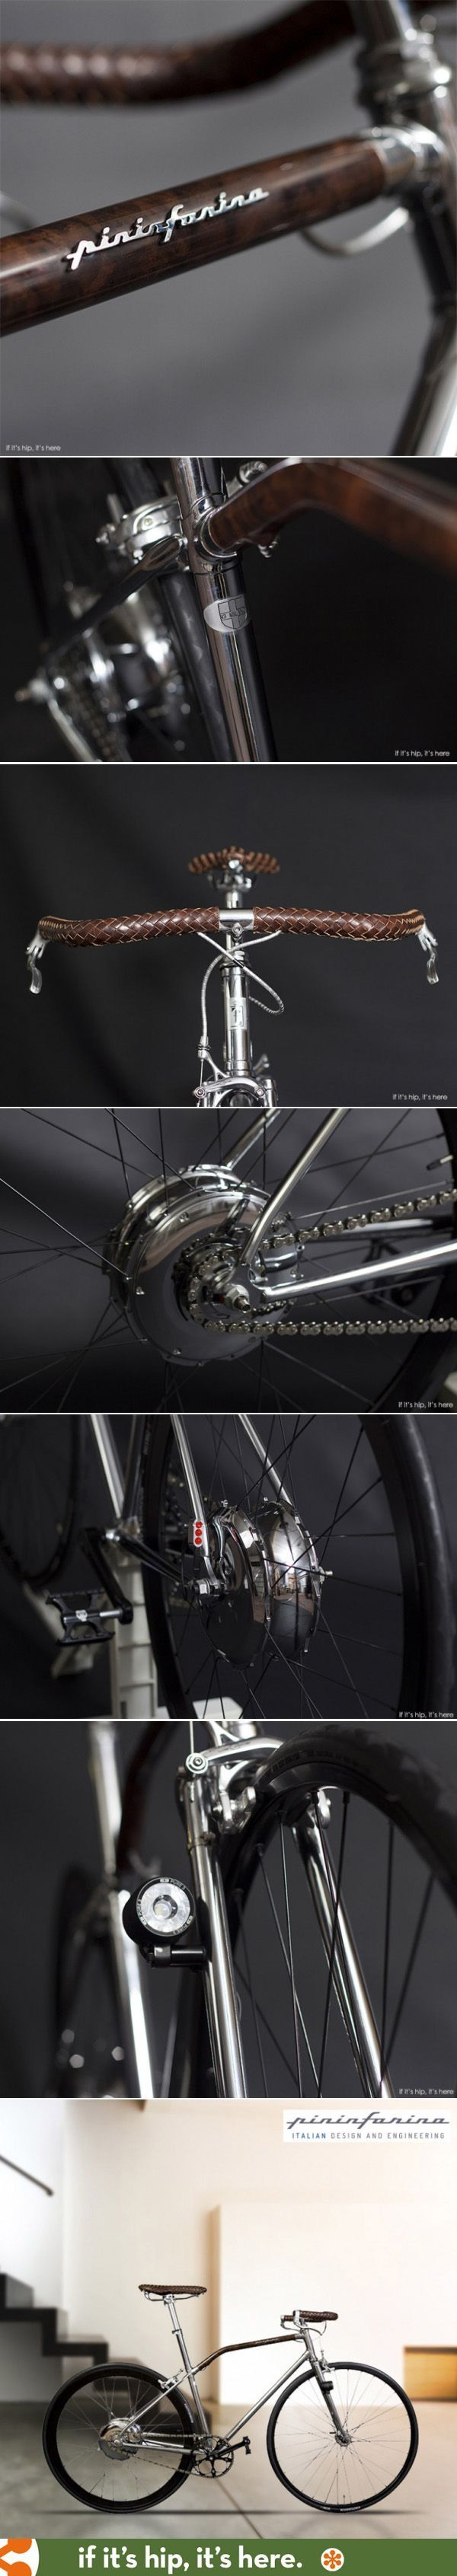 Limited edition Pininfarina Fuoriserie bike with electric engine